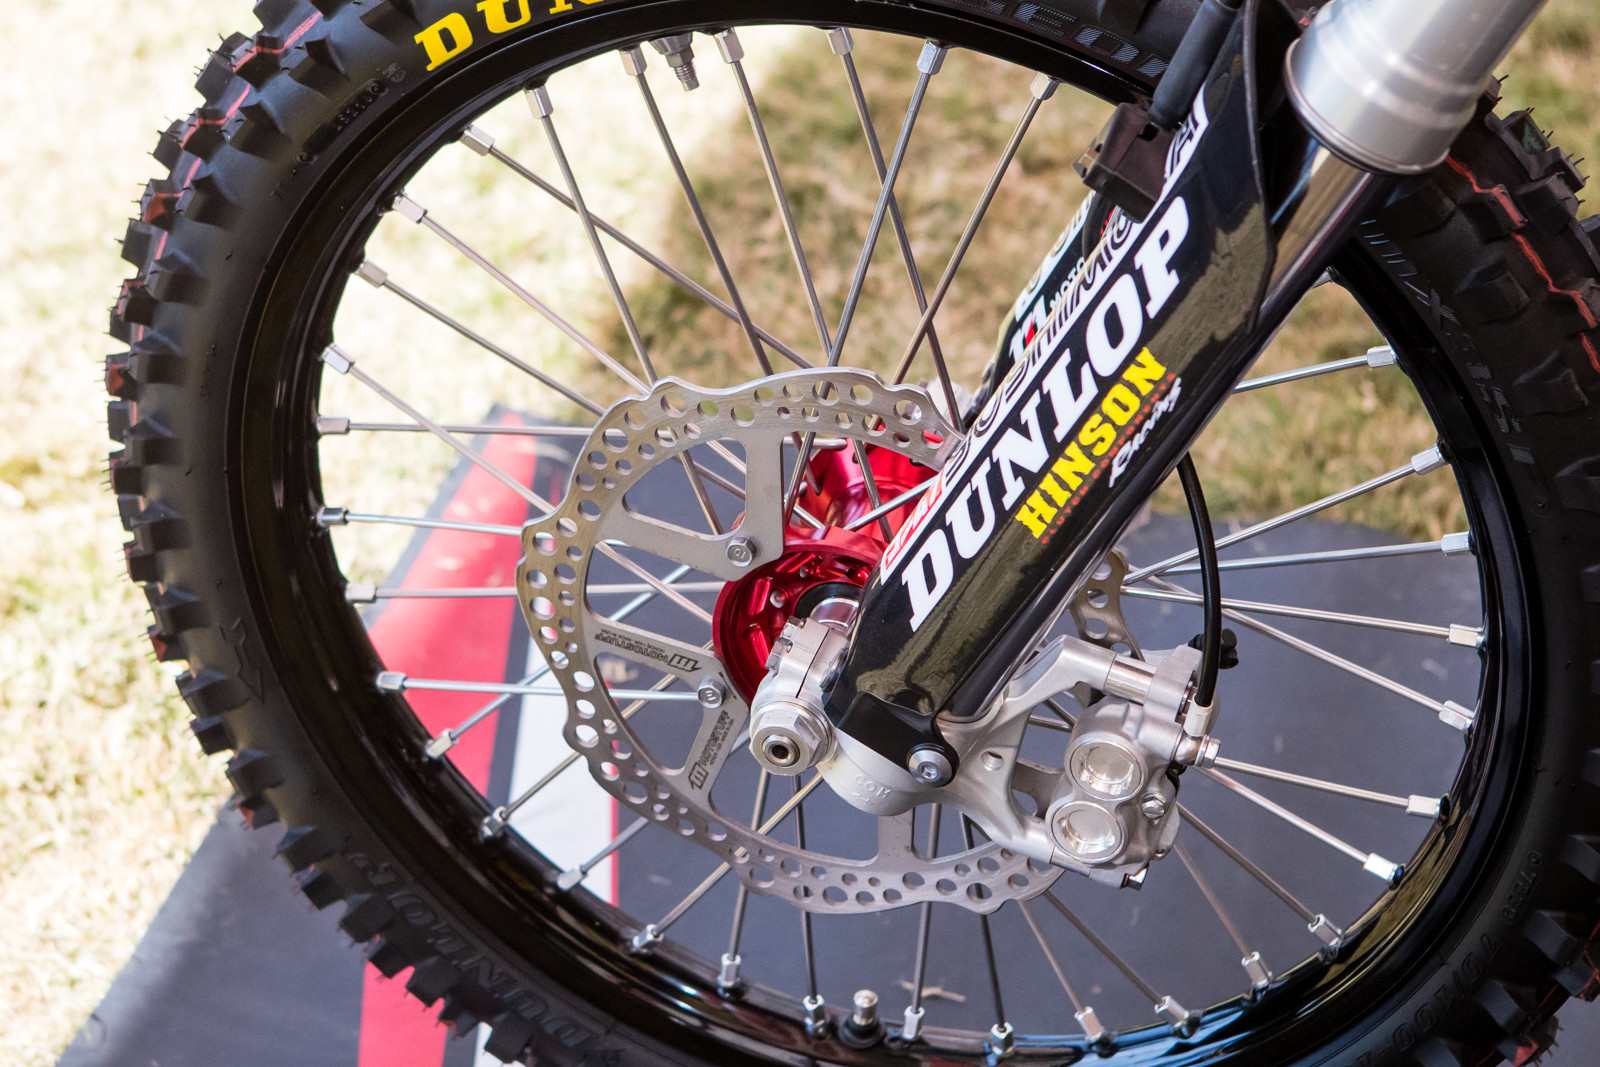 WP forks and Brembo brakes up front.